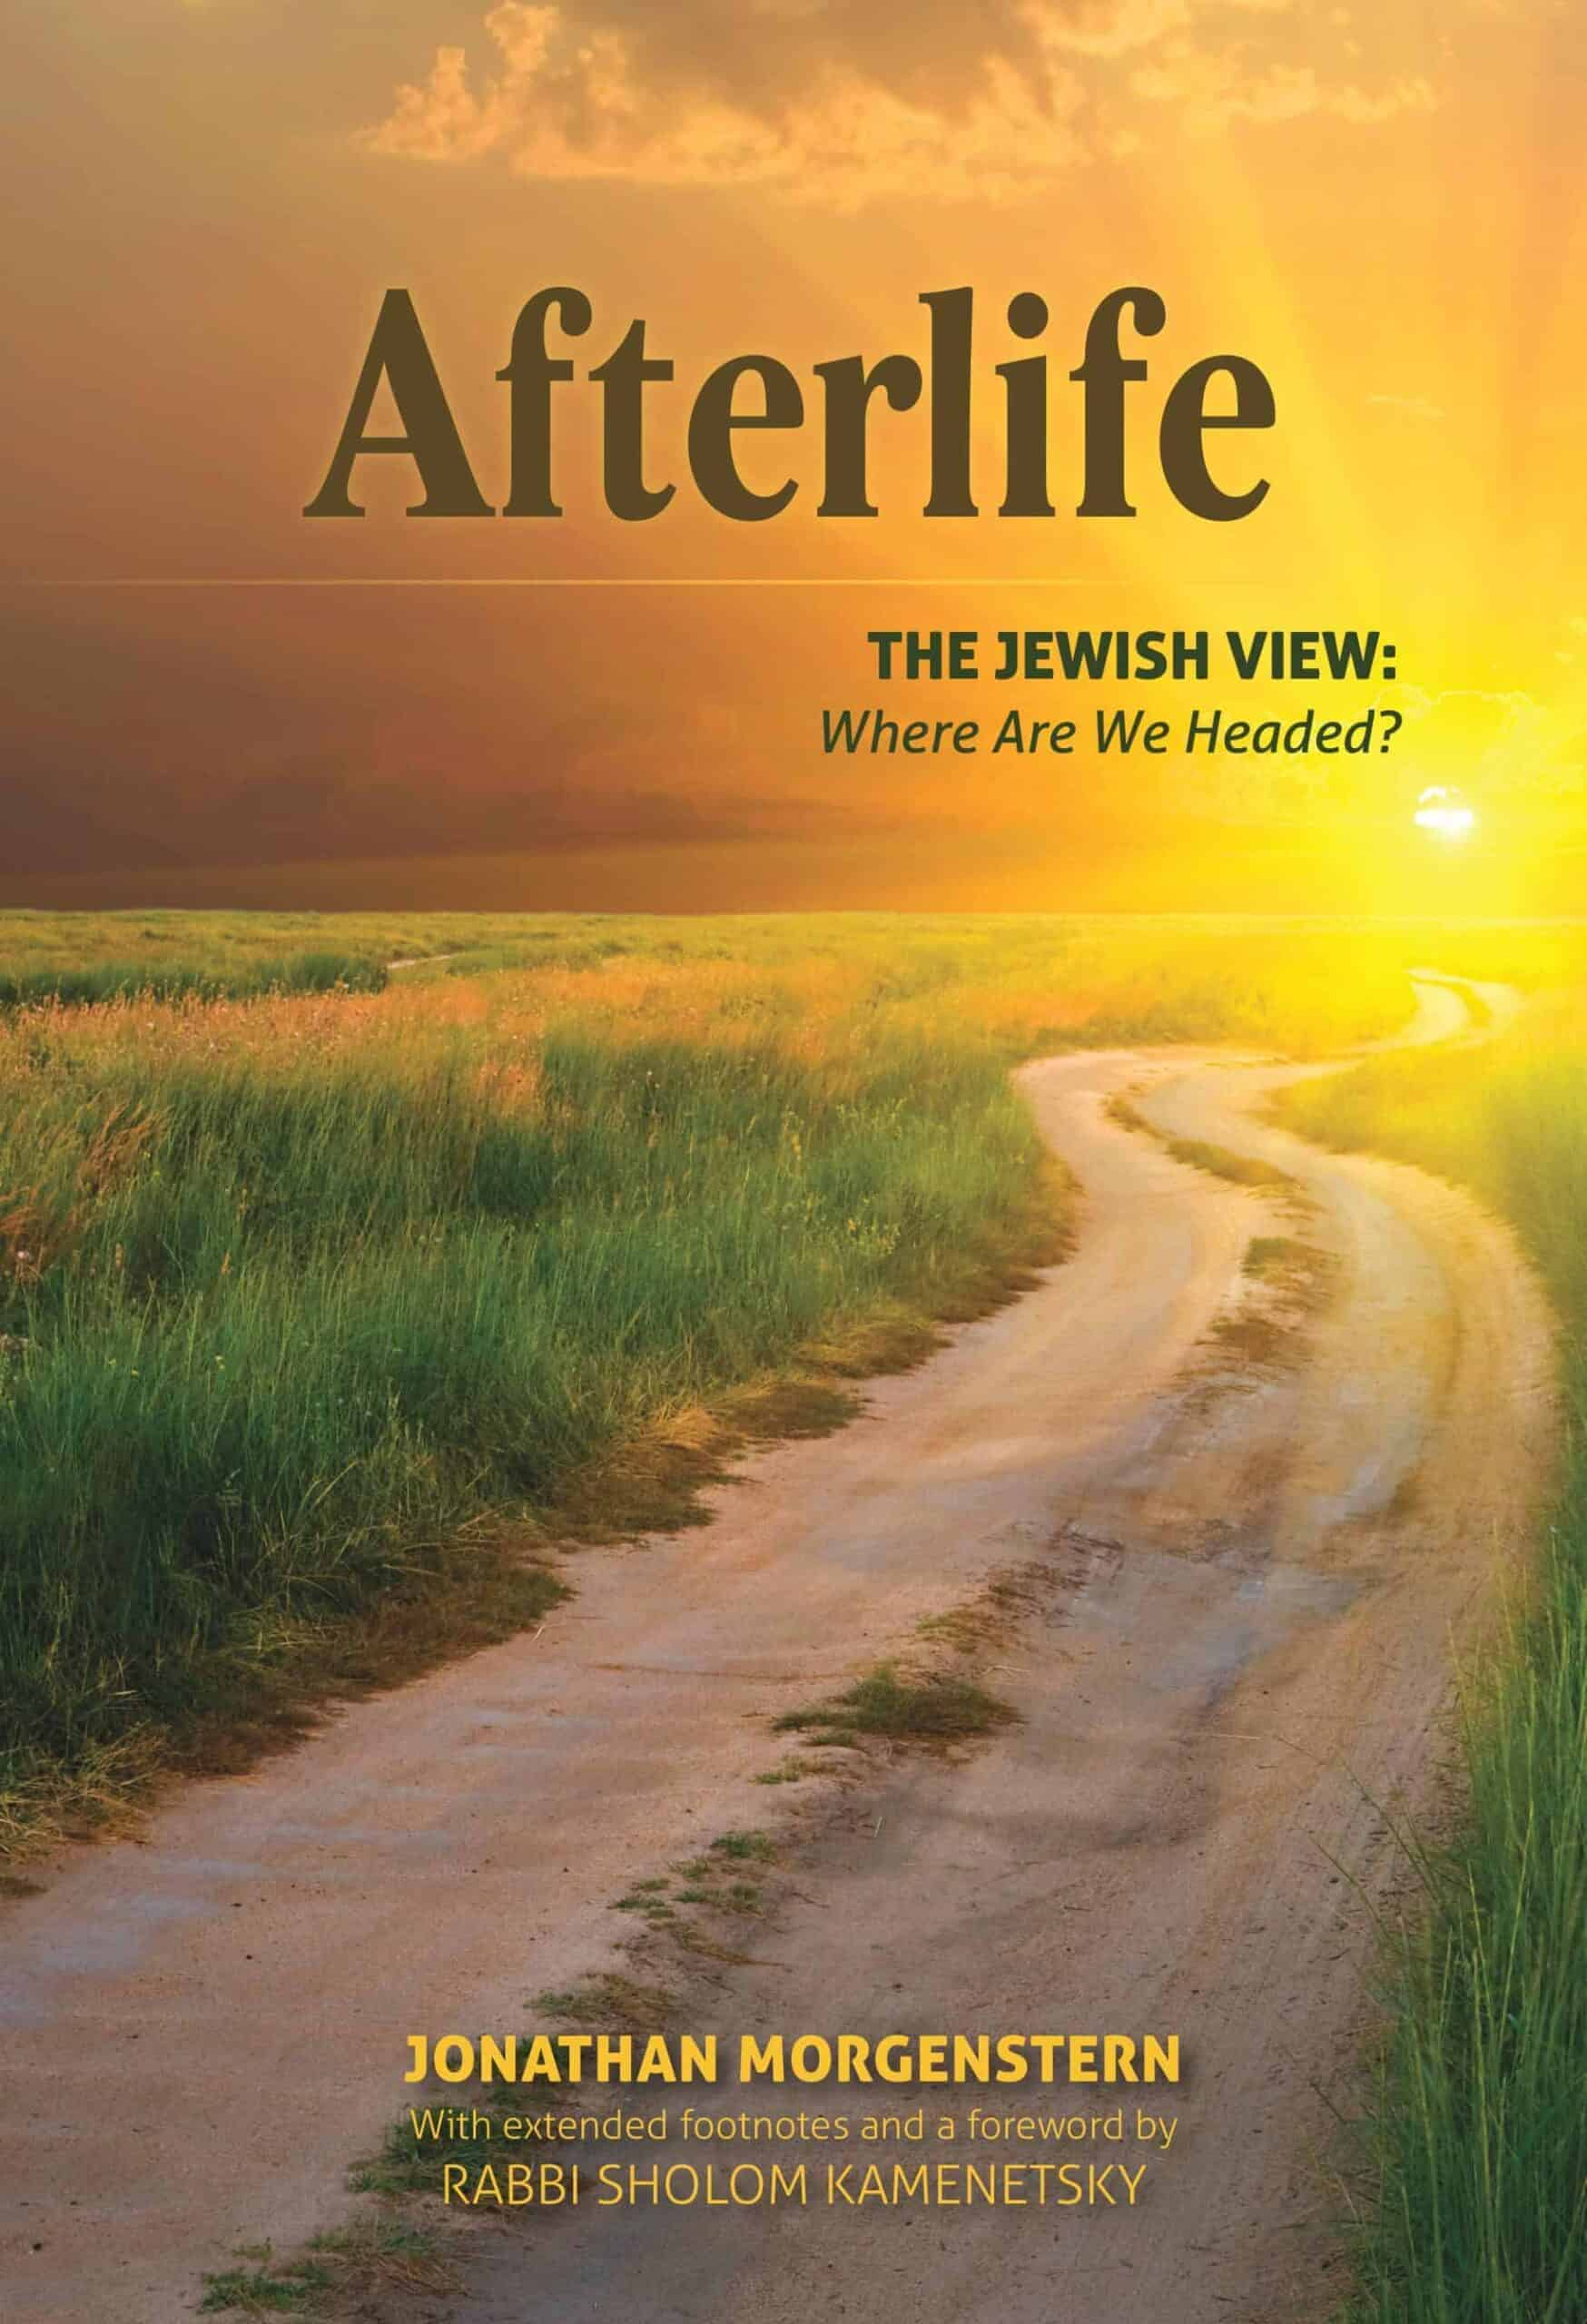 Afterlife: The Jewish View